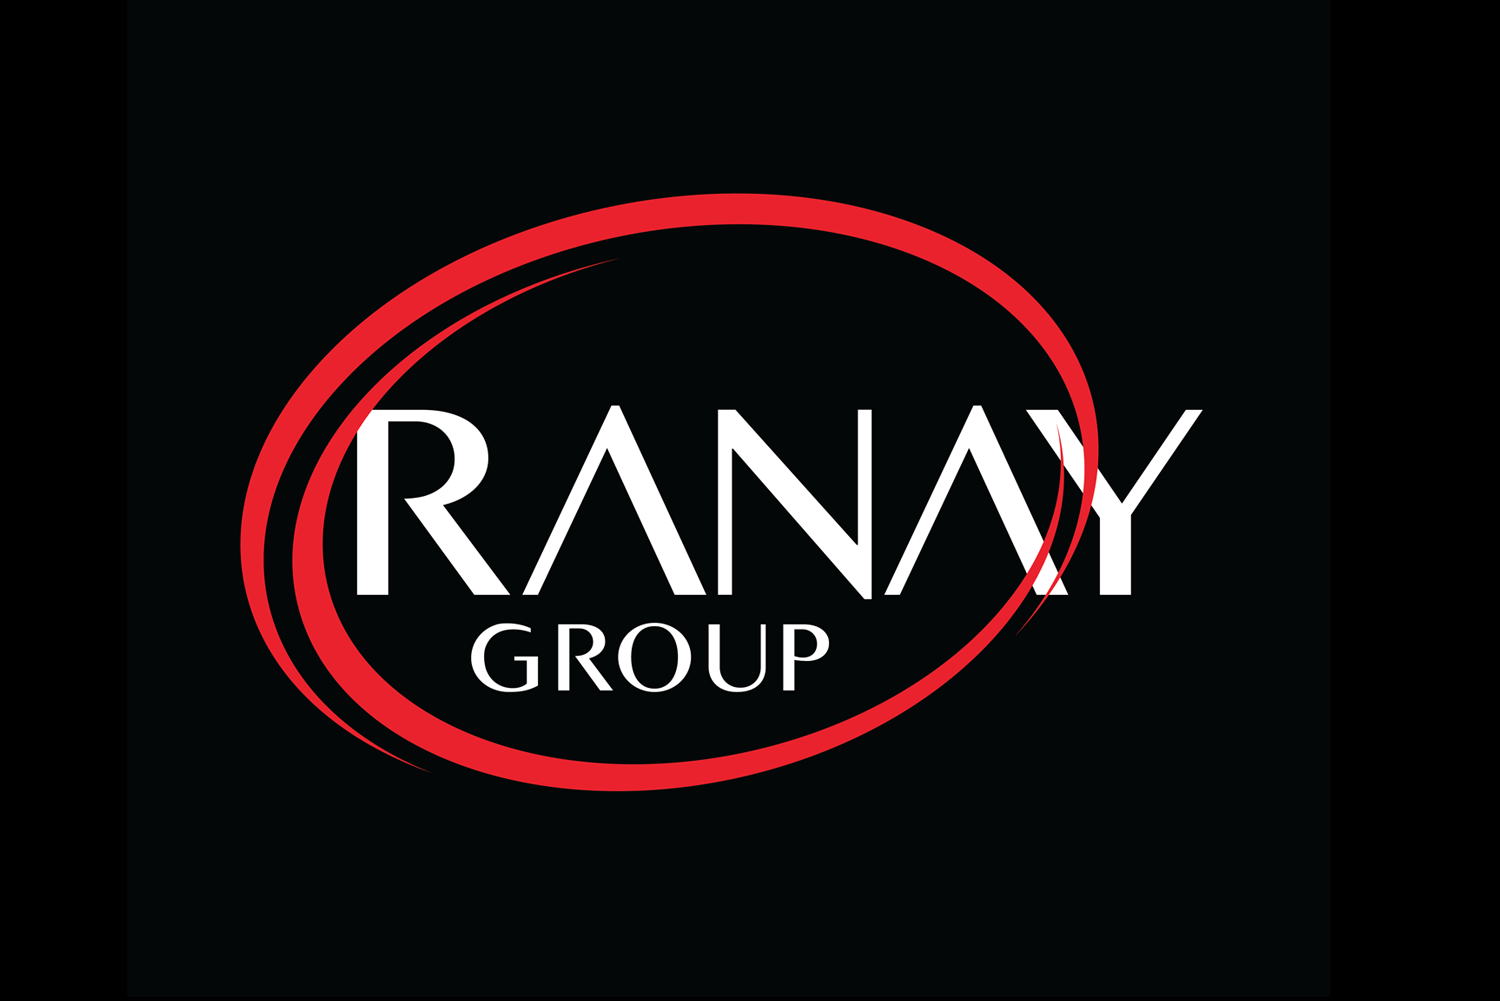 RANAY Group